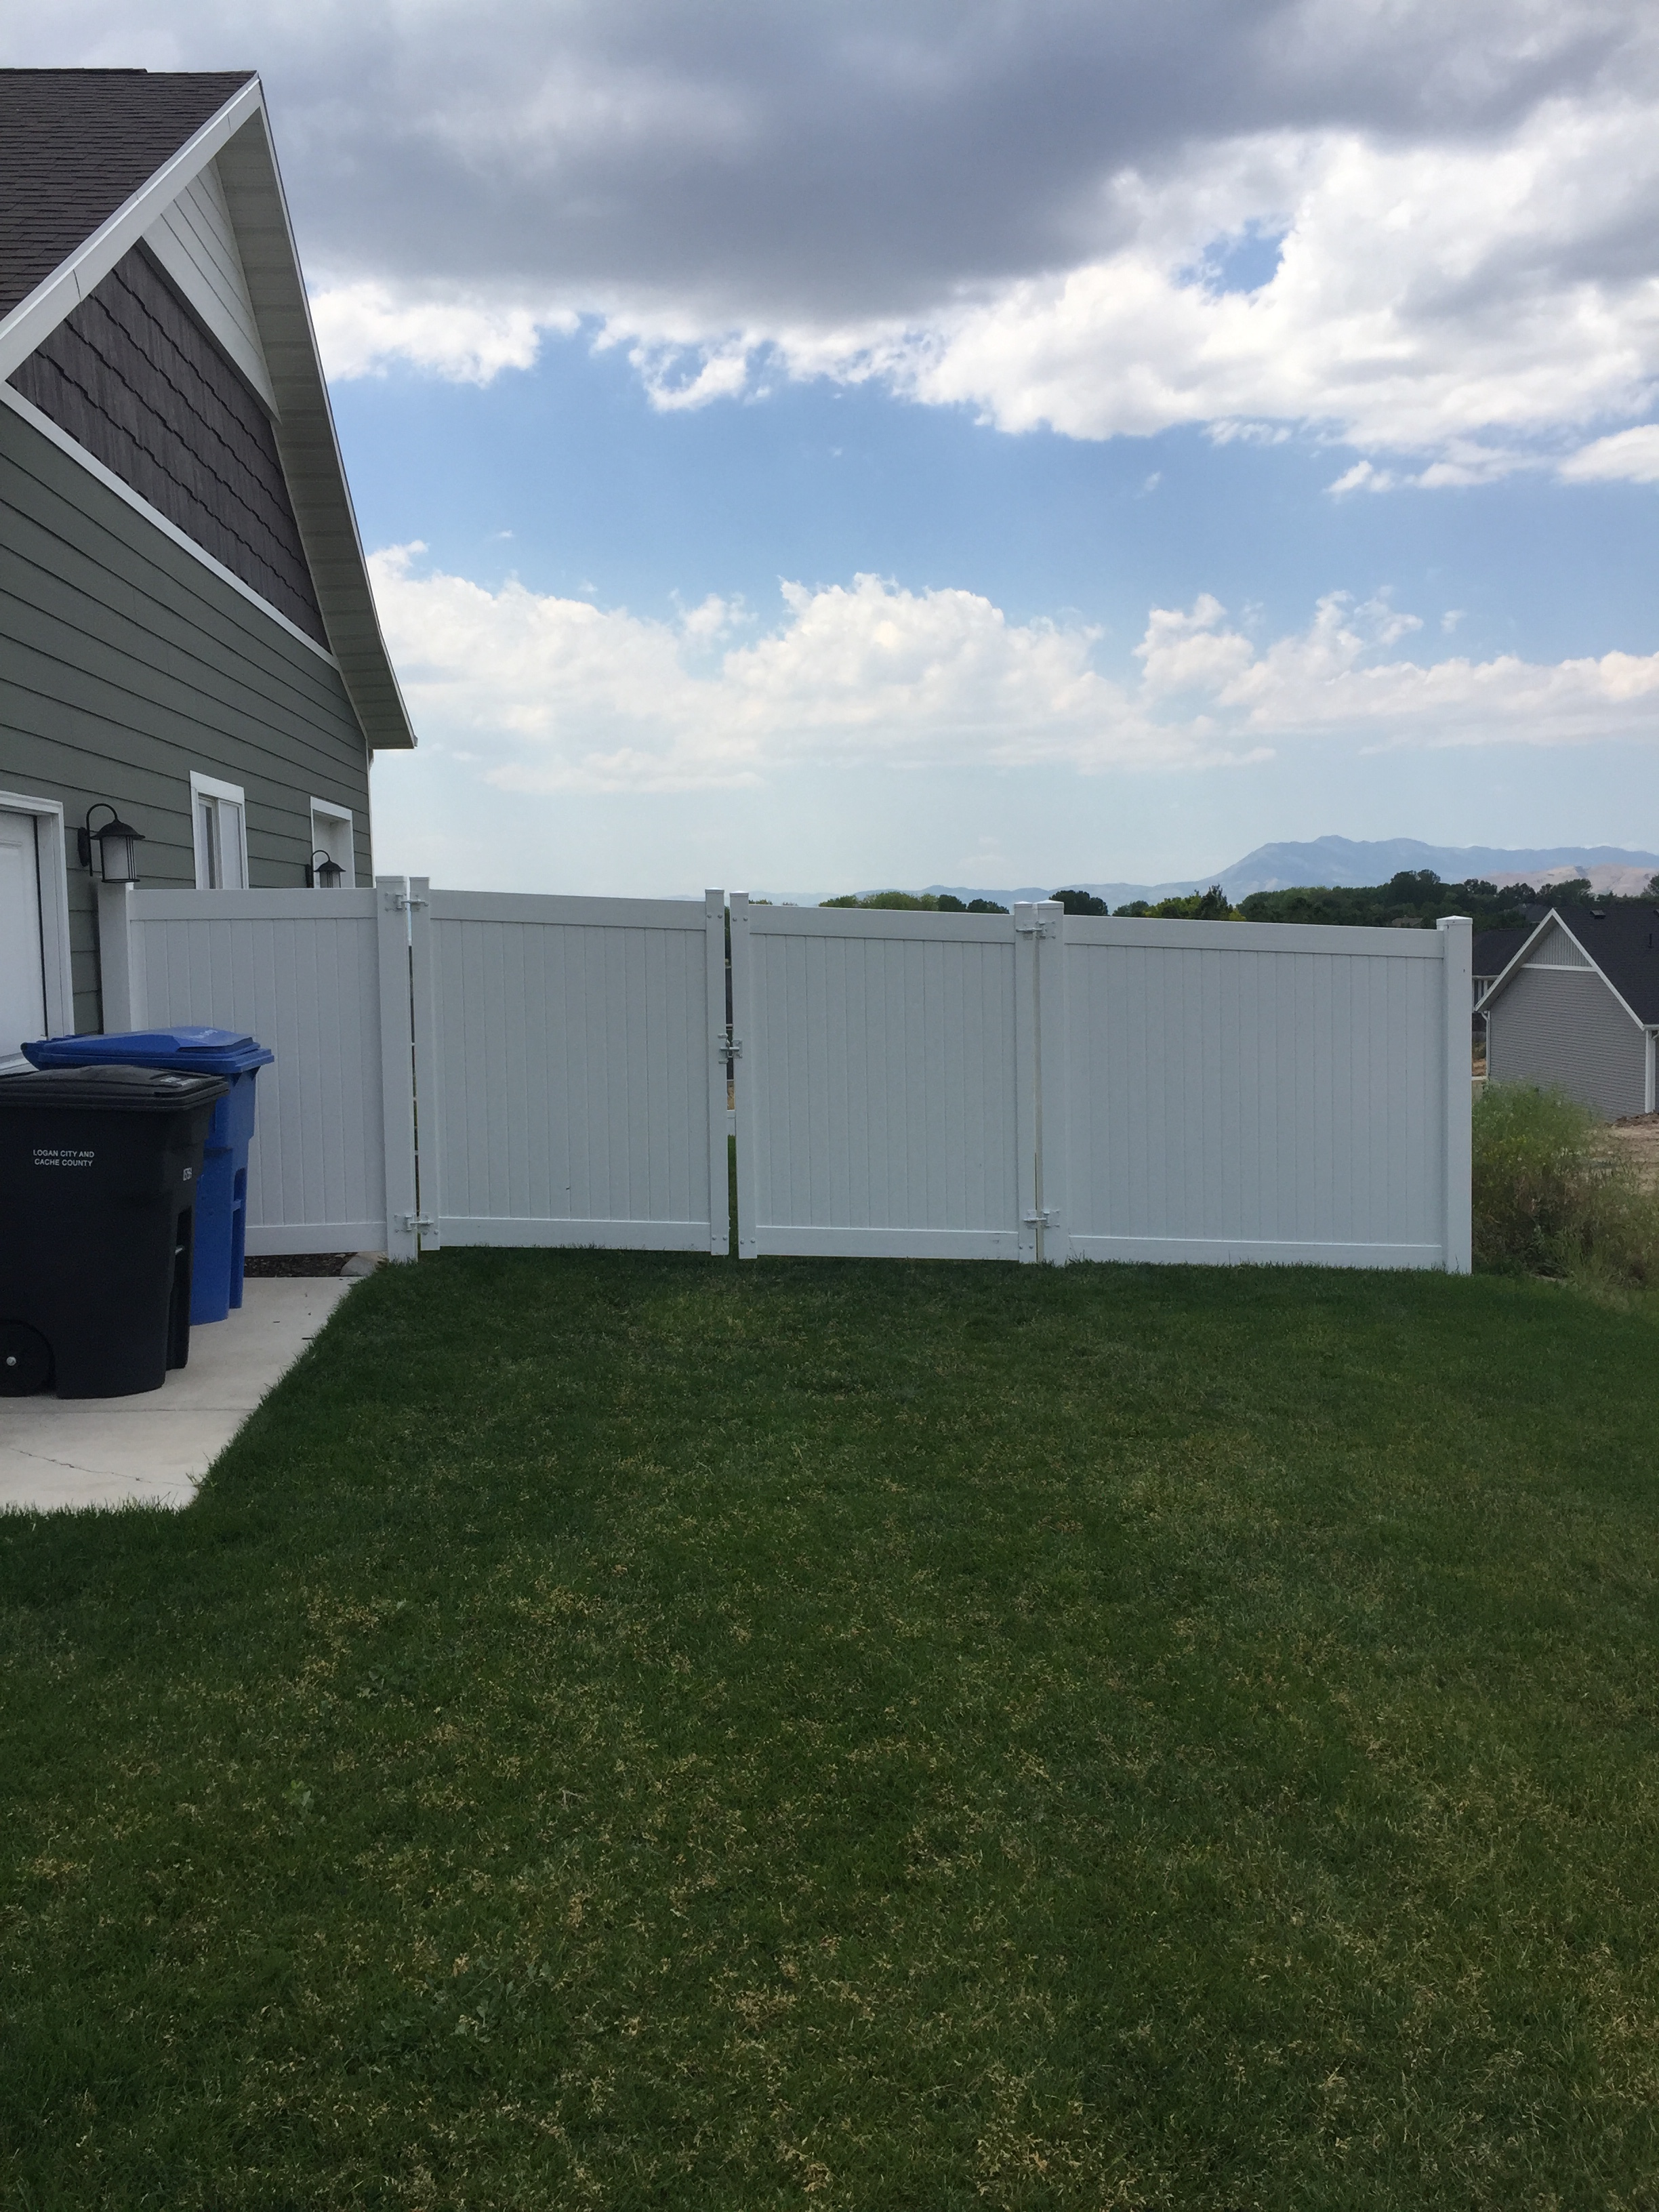 vinyl fencing with double gate